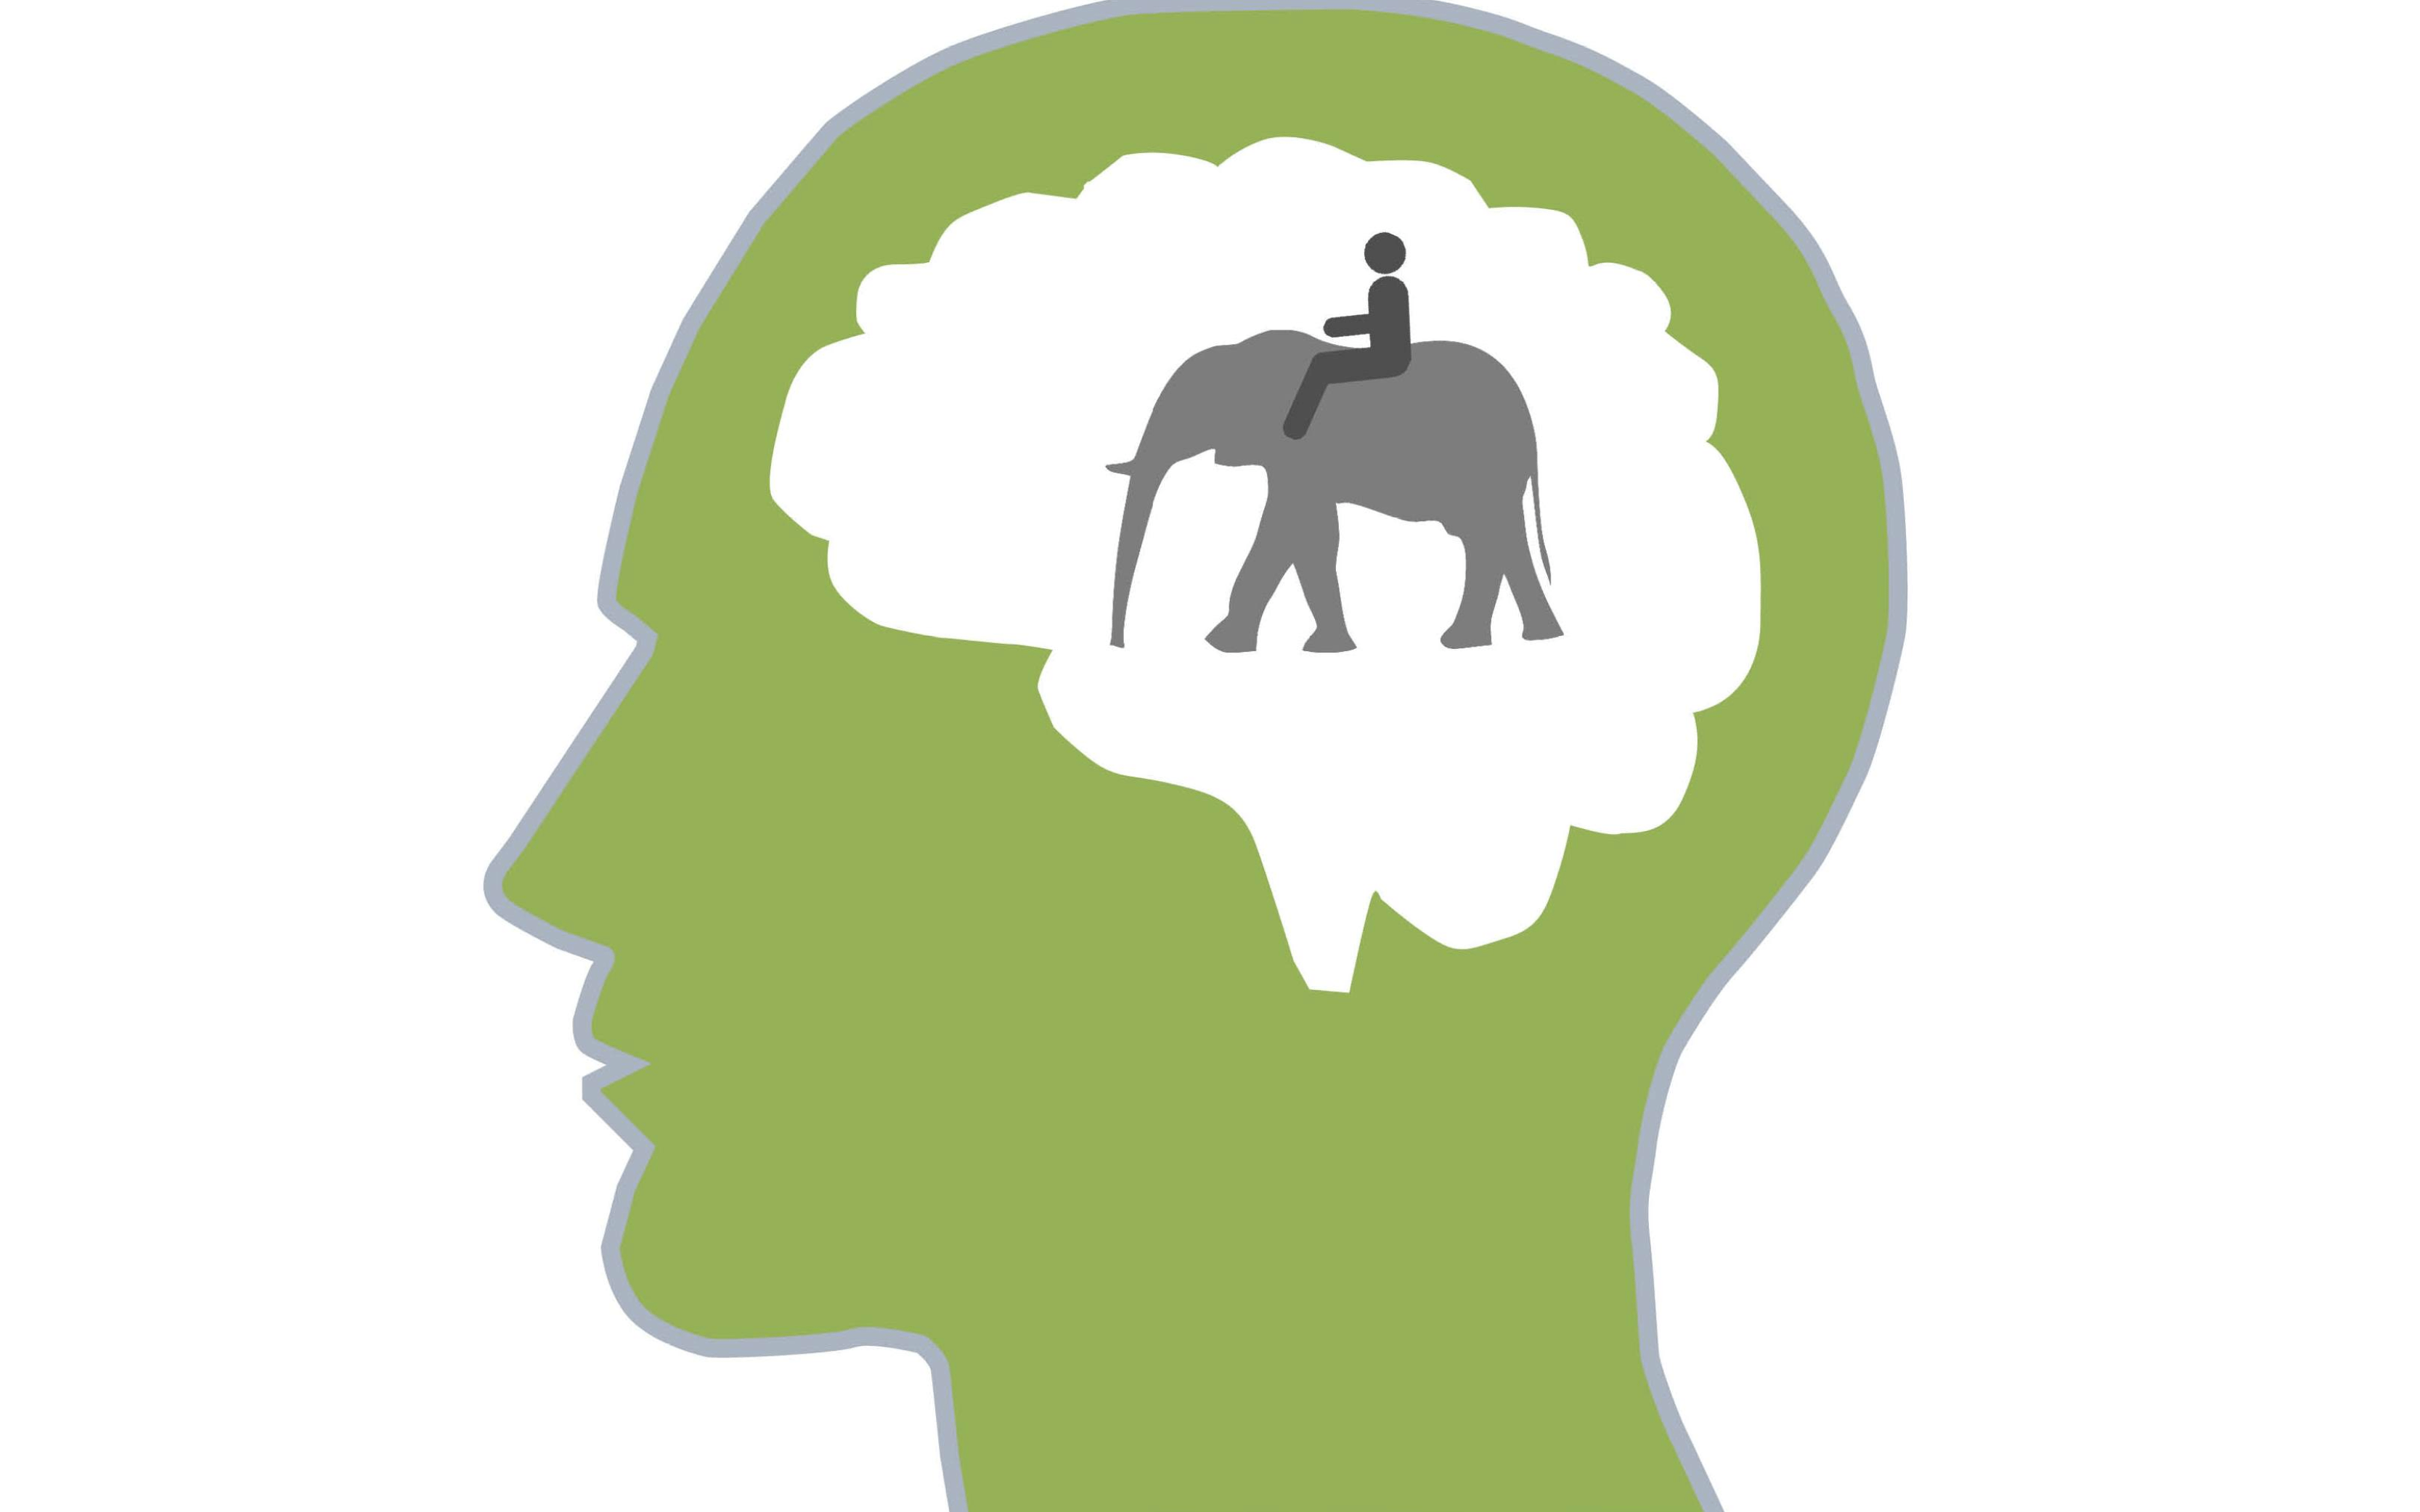 How An Elephant And Rider Help B2B Sales